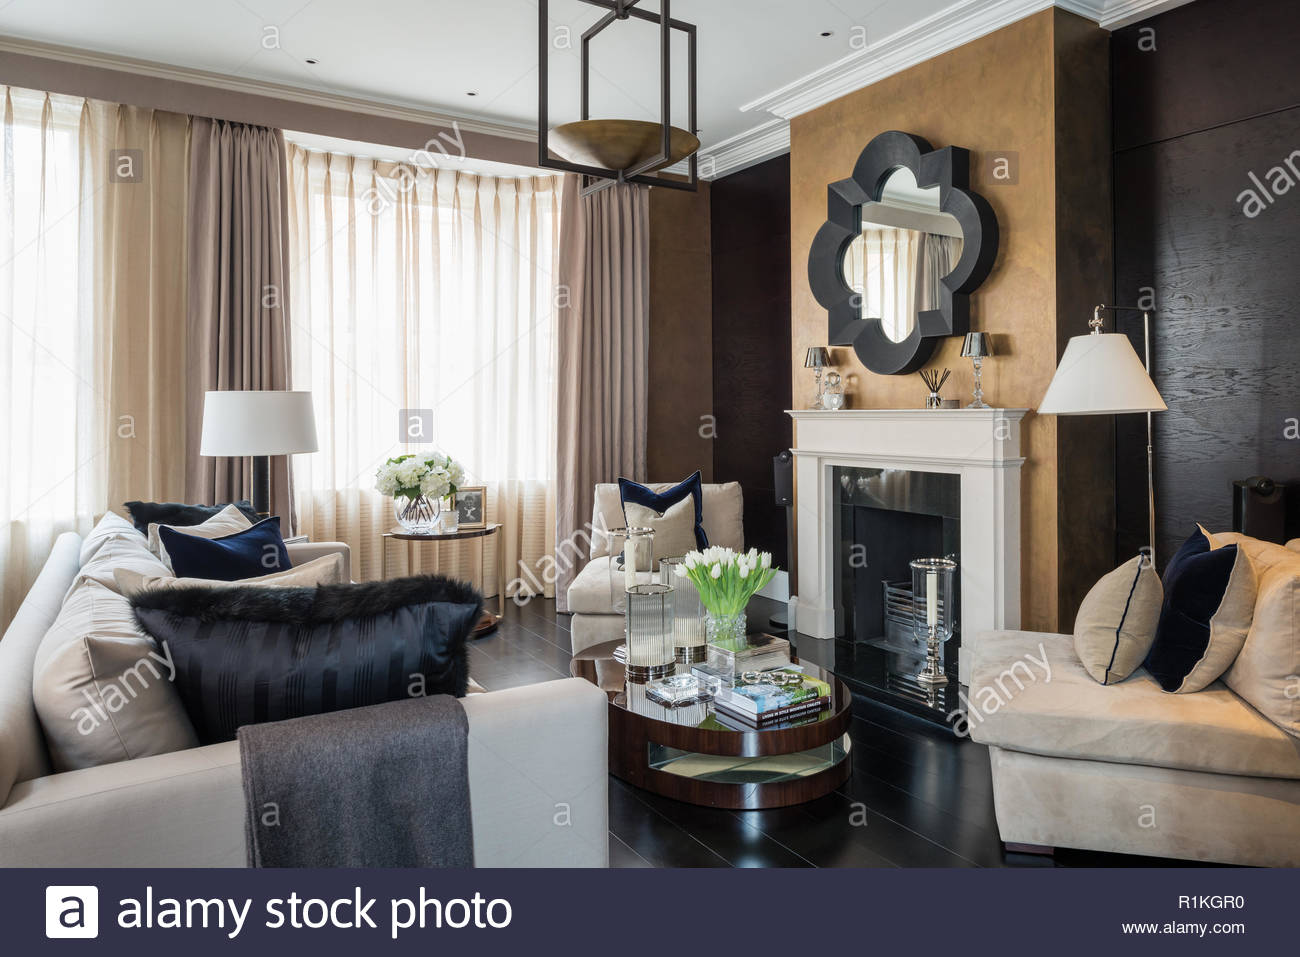 Masculine style living room with fireplace Stock Photo